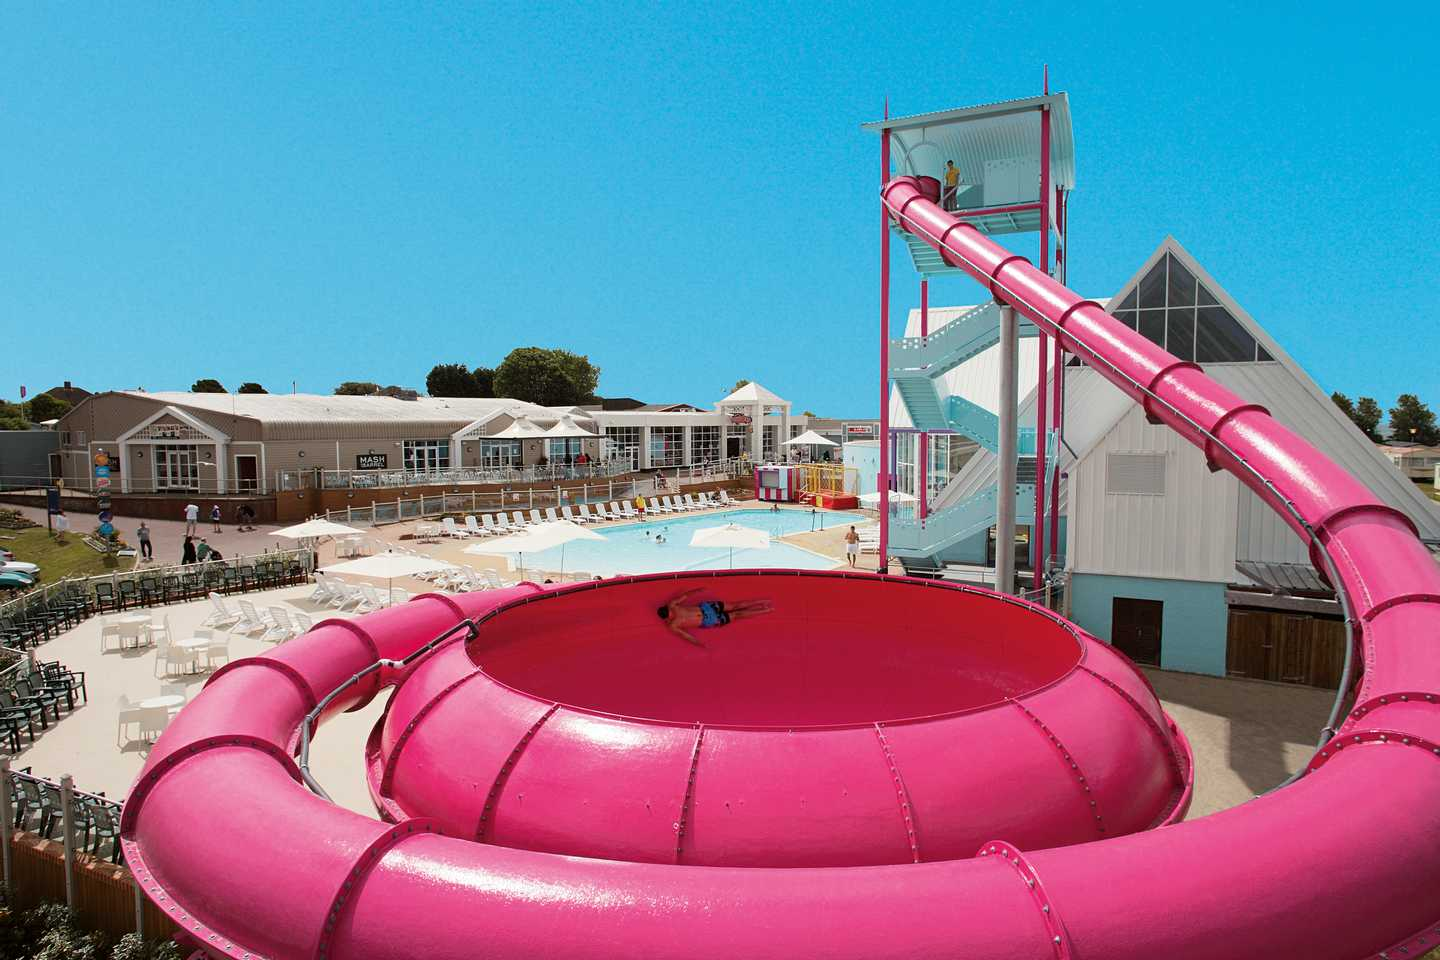 An aerial view of a man sliding through the pink Space Bowl flume